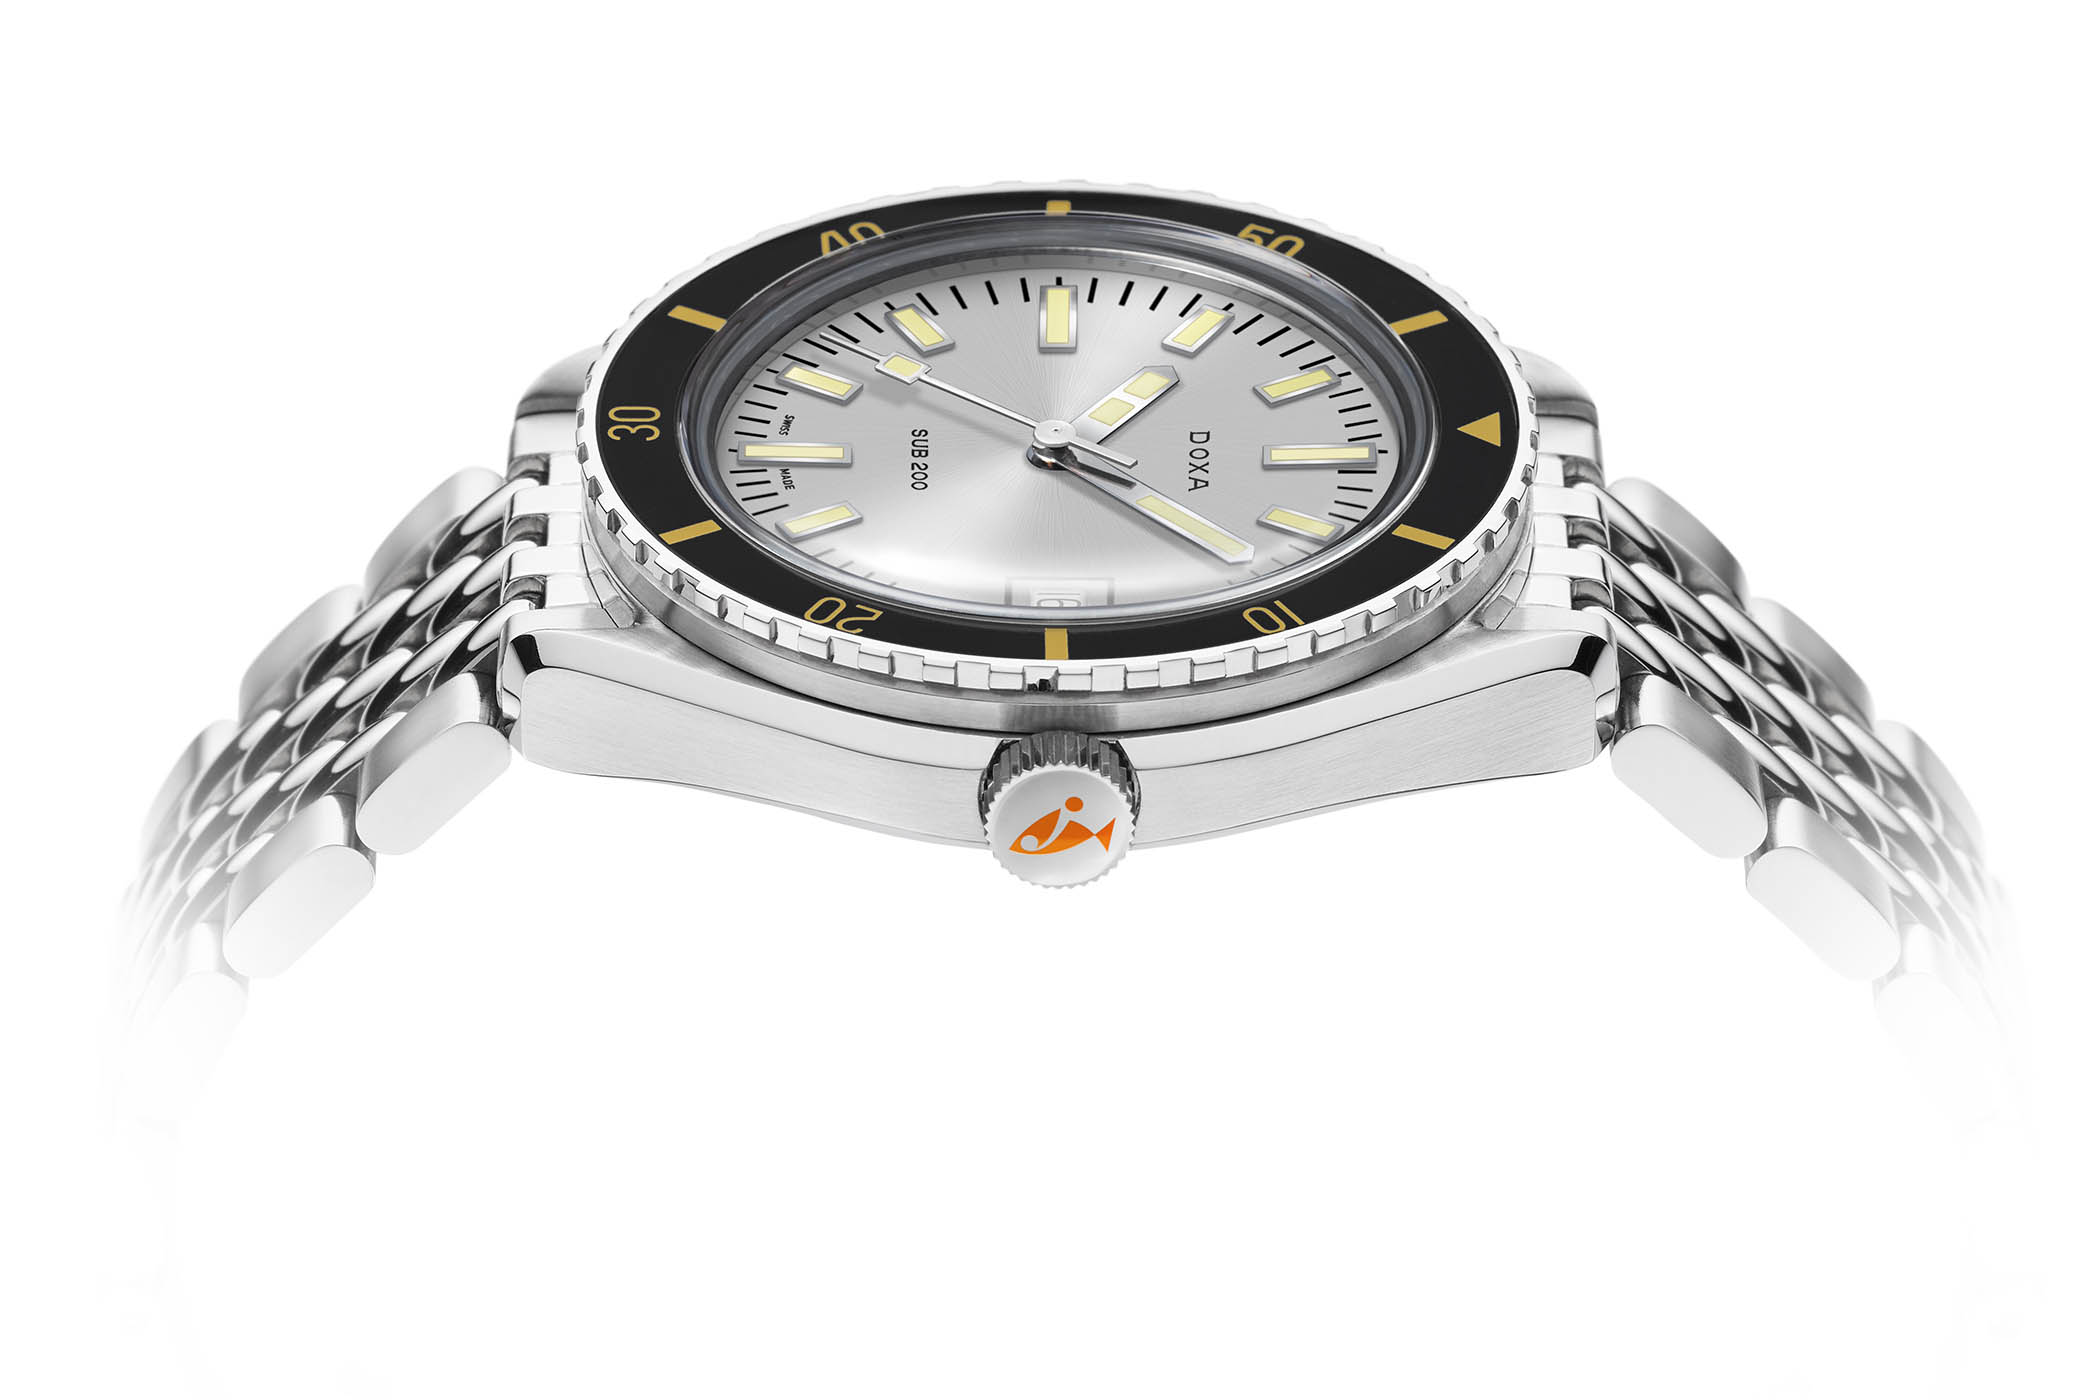 Doxa Sub 200 Collection 2019 - Value Proposition Dive Watch